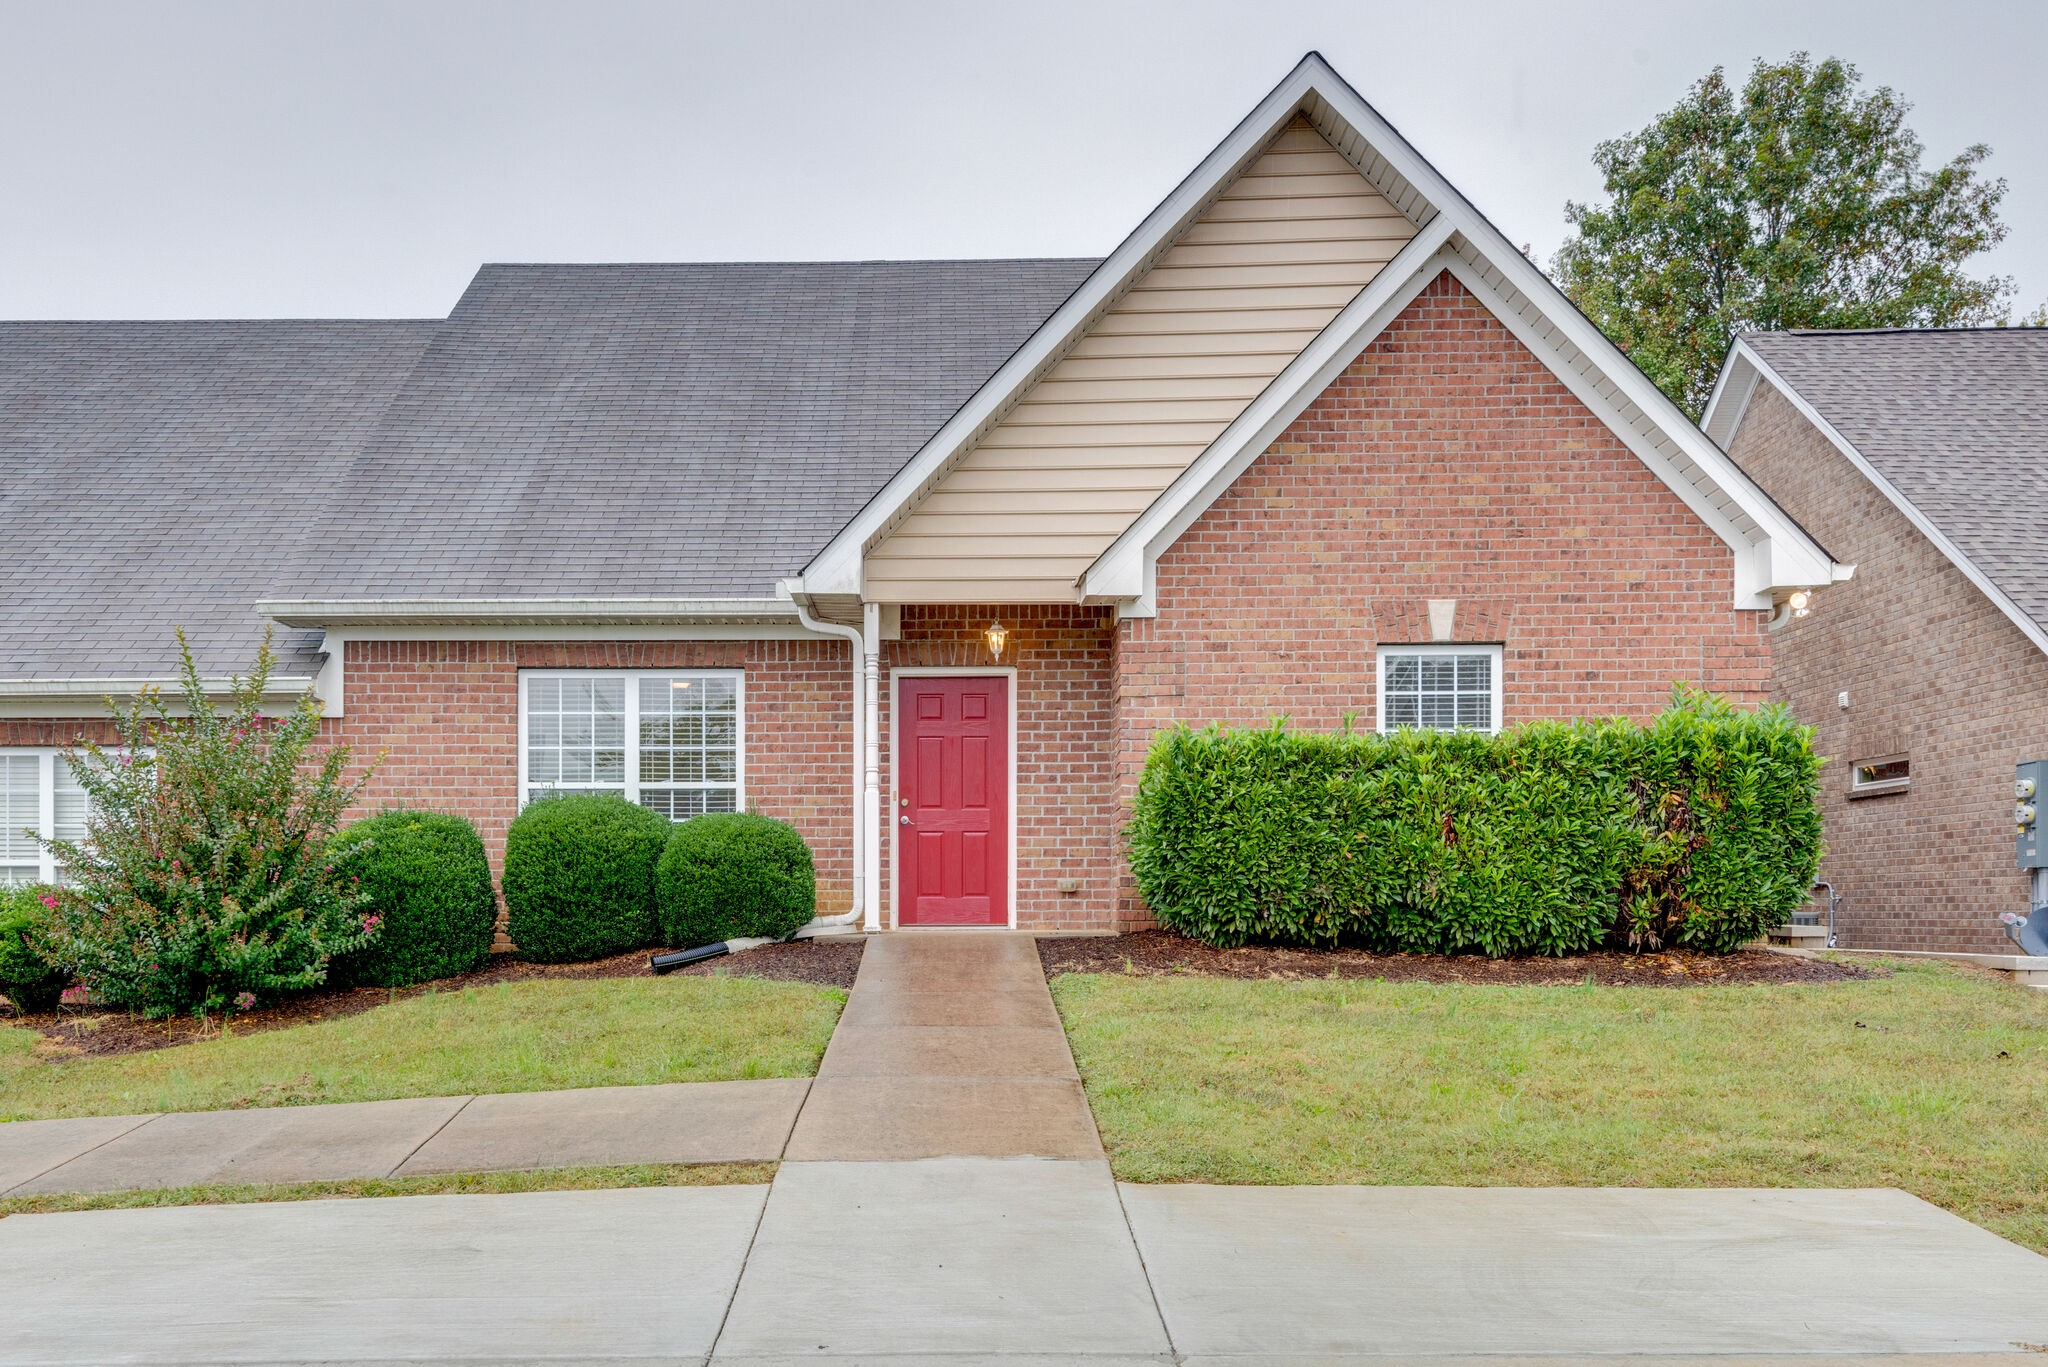 Don't miss this one--one level living in highly desirable Fernvale Springs neighborhood with Williamson Cty taxes just minutes to Publix, Walmart and even a nature park.  No carpet, no stairs even from parking pad!  2016 HVAC, 2009 Water Heater annually serviced by Hiller, large eat-in kitchen with entry to back patio which faces a tree line for privacy The primary suite features a walk-in closet and updated master shower.  Dining room can also be used as a flex/office space and attic storage.